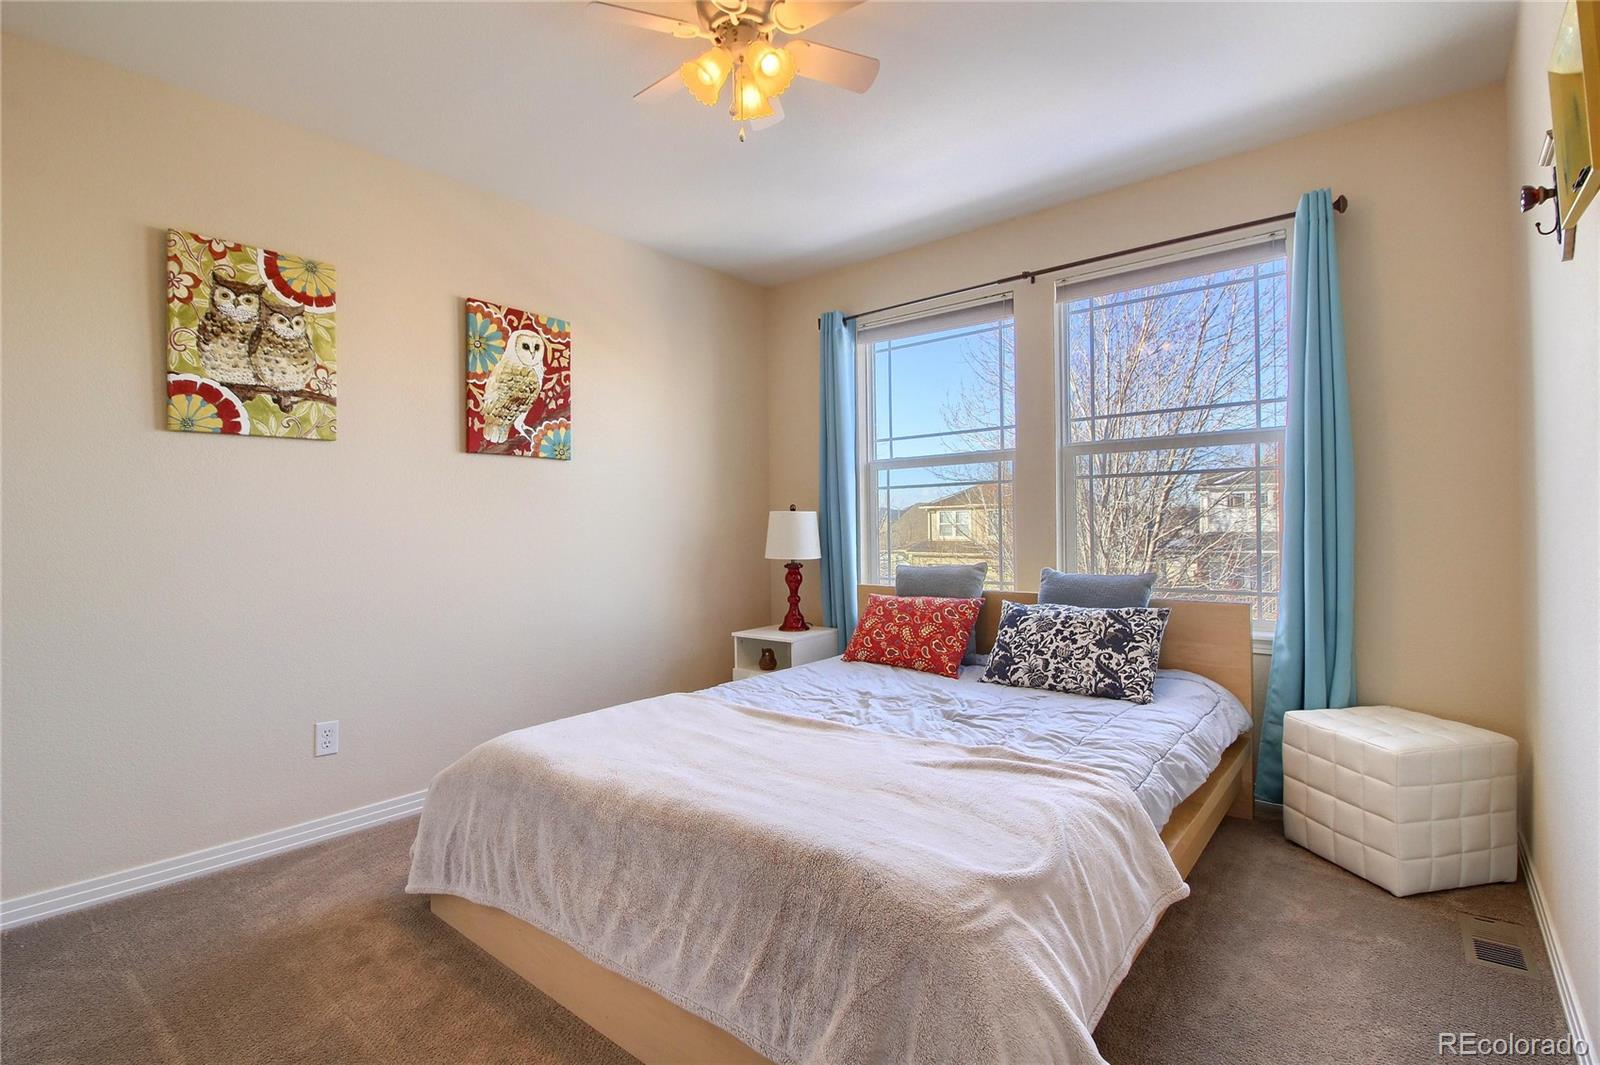 MLS# 3161208 - 16 - 1068 W 135th Court, Westminster, CO 80234